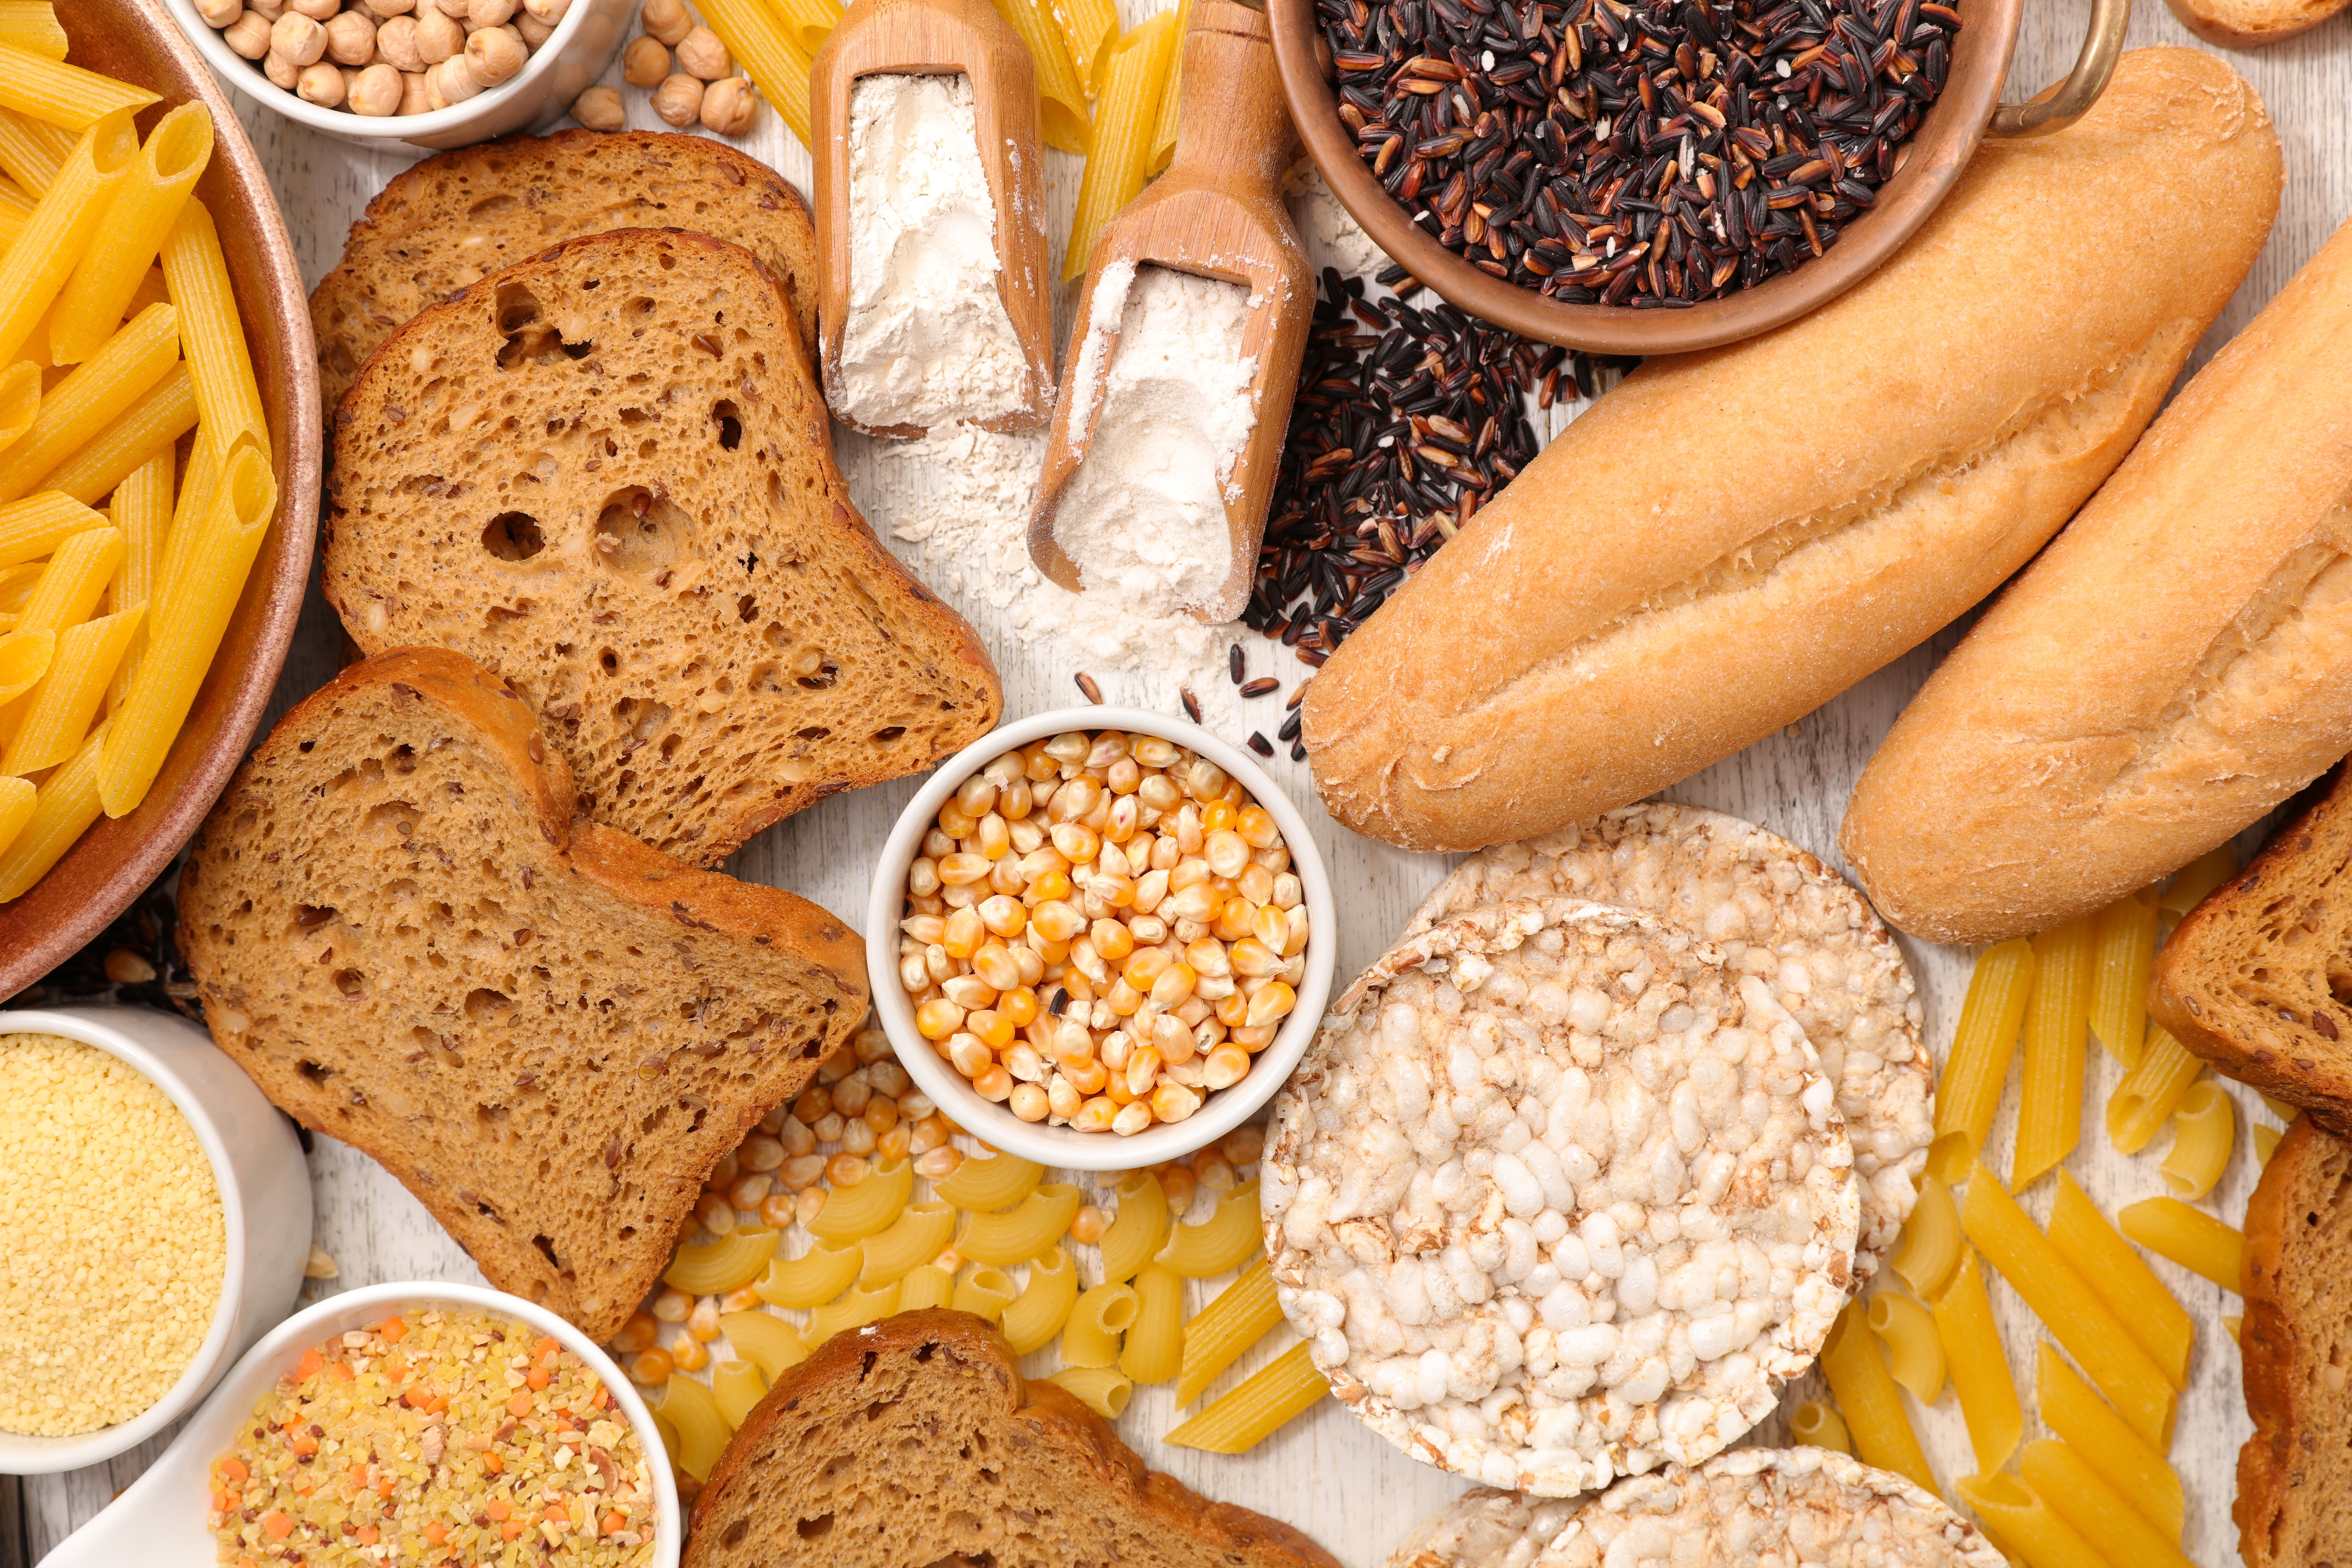 a selection of gluten free foods